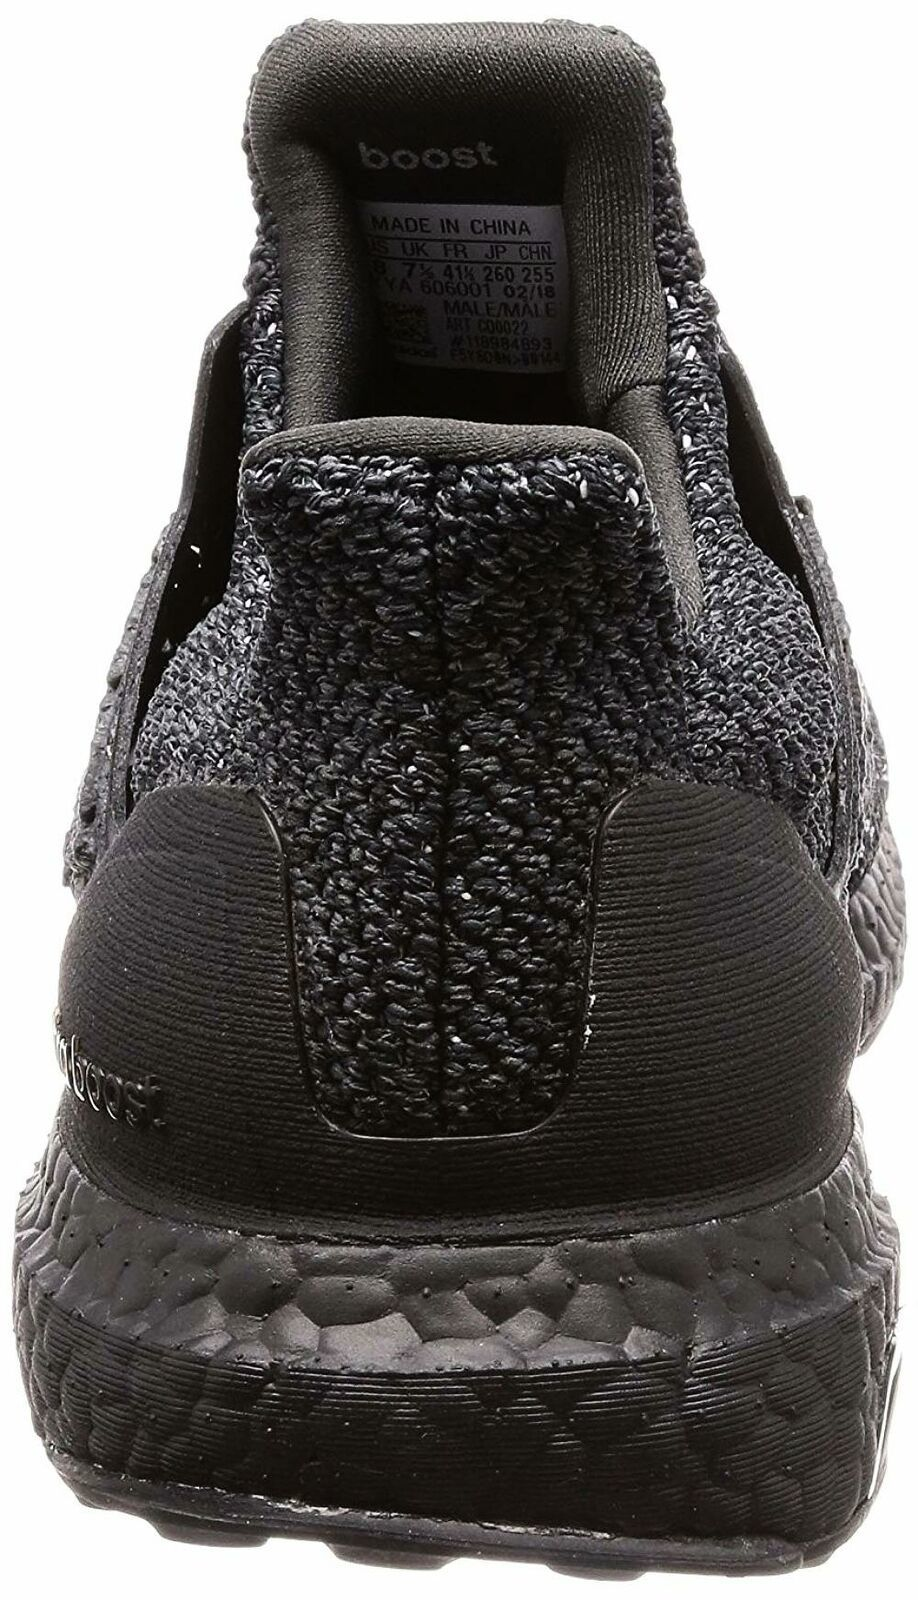 dcf5dd109 adidas Originals Men s Ultraboost Clima - and similar items